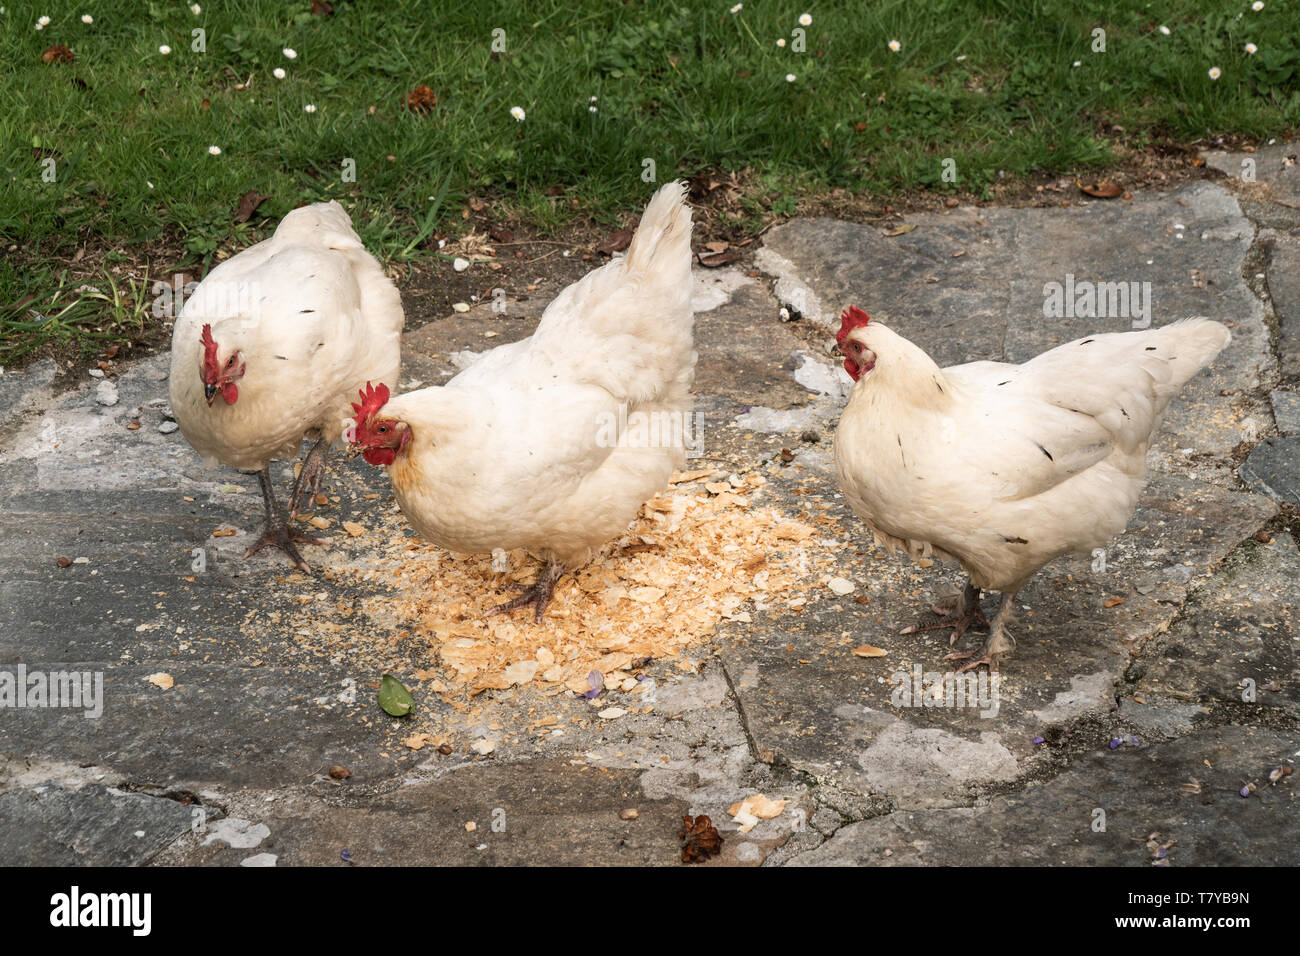 Chickens Eating Stock Photos & Chickens Eating Stock Images